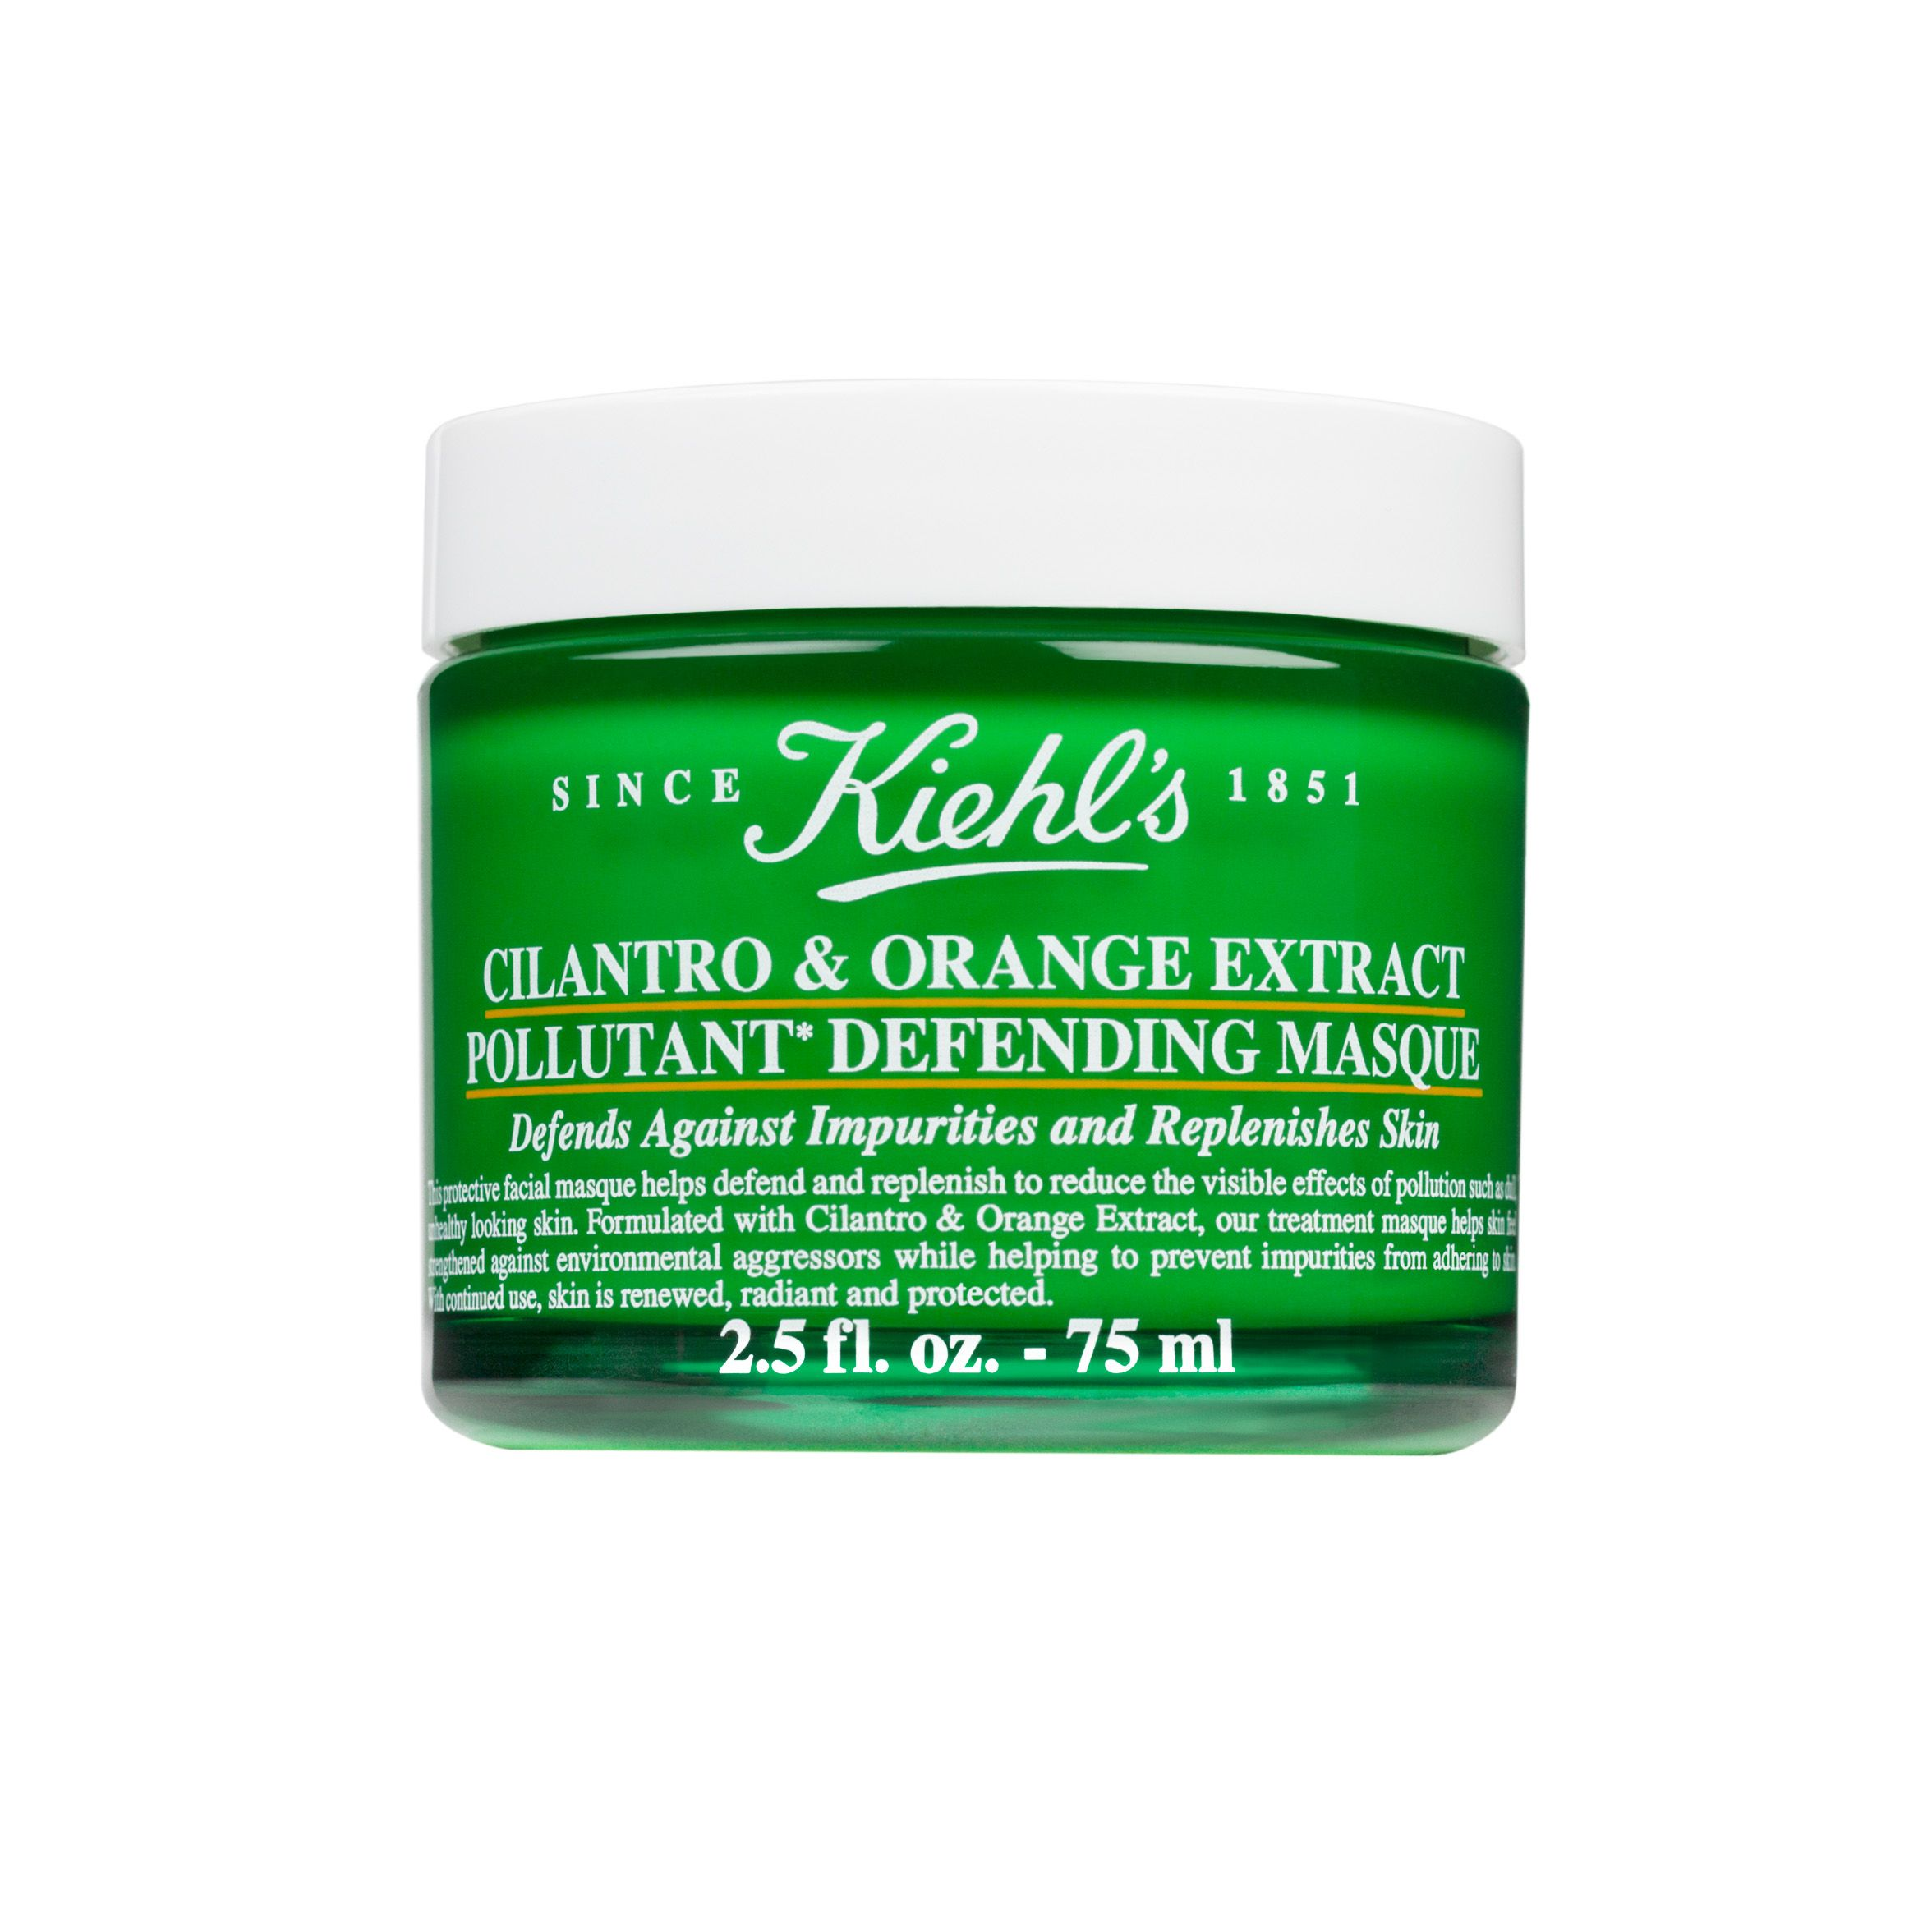 Kiehls Cilantro & Orange Pollutant Defending Masque